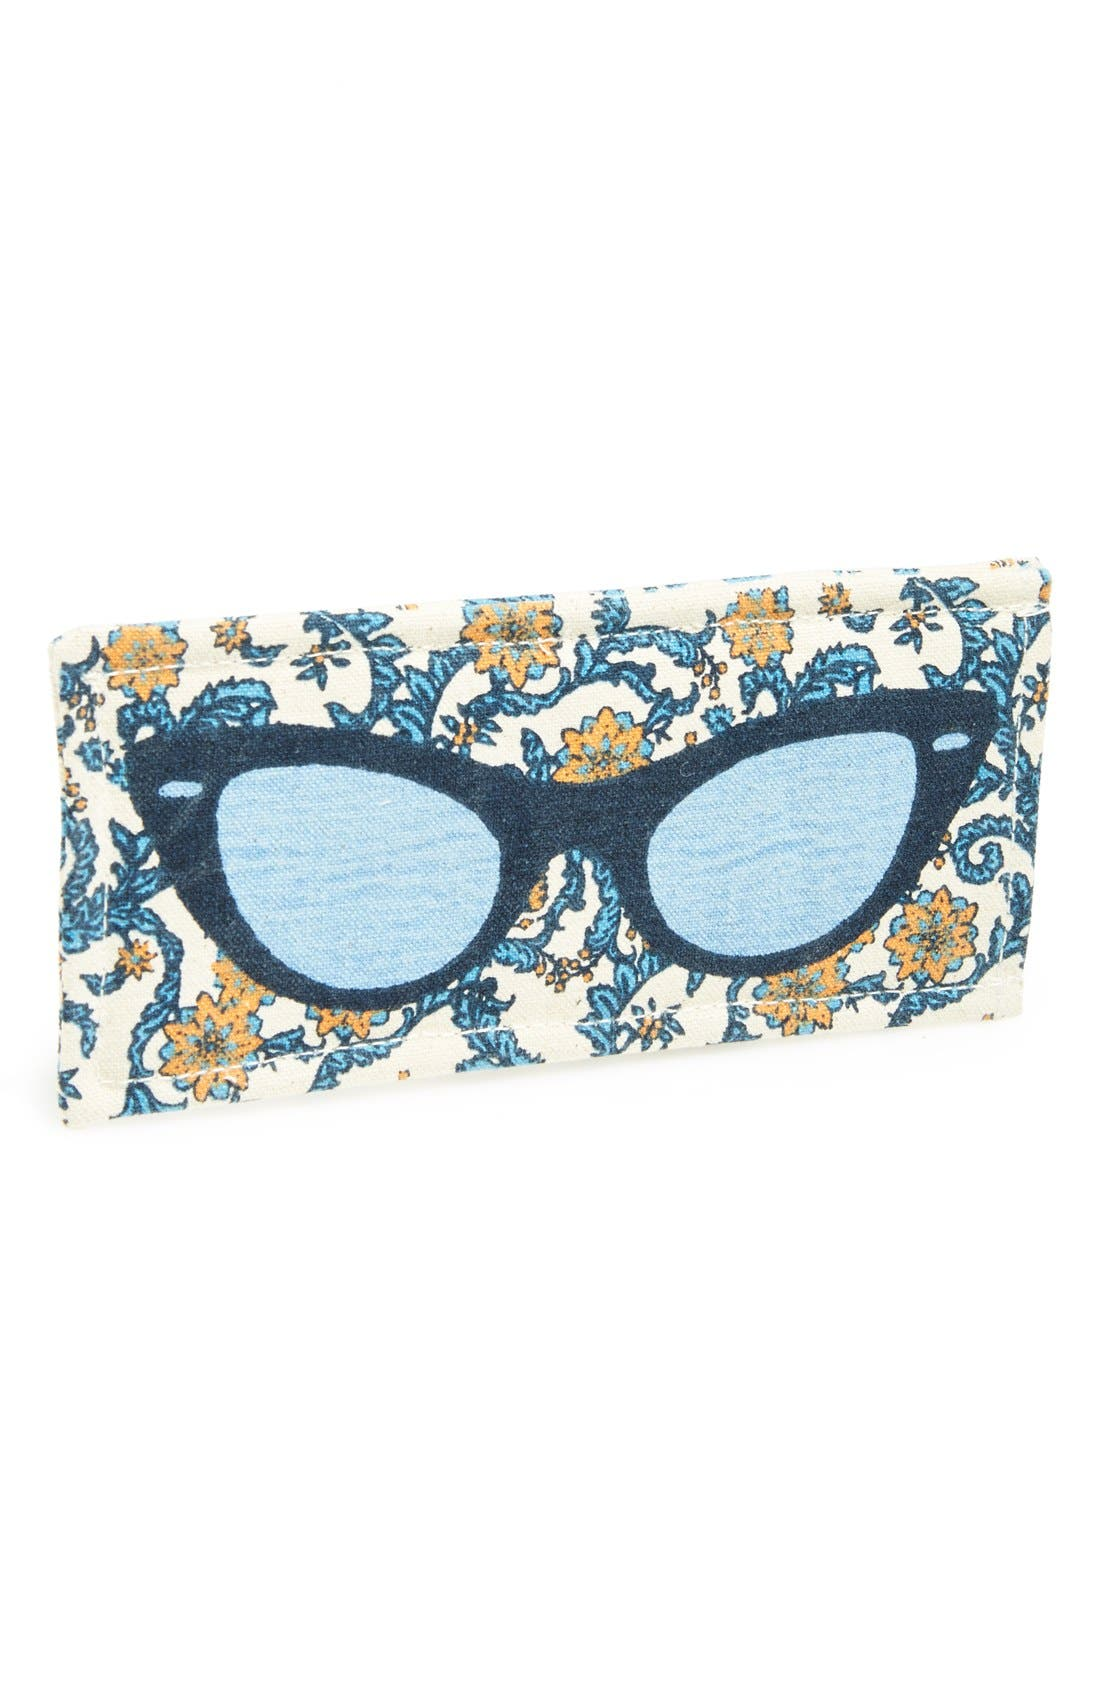 Alternate Image 1 Selected - Thomas Paul 'Lucy' Sunglasses Case